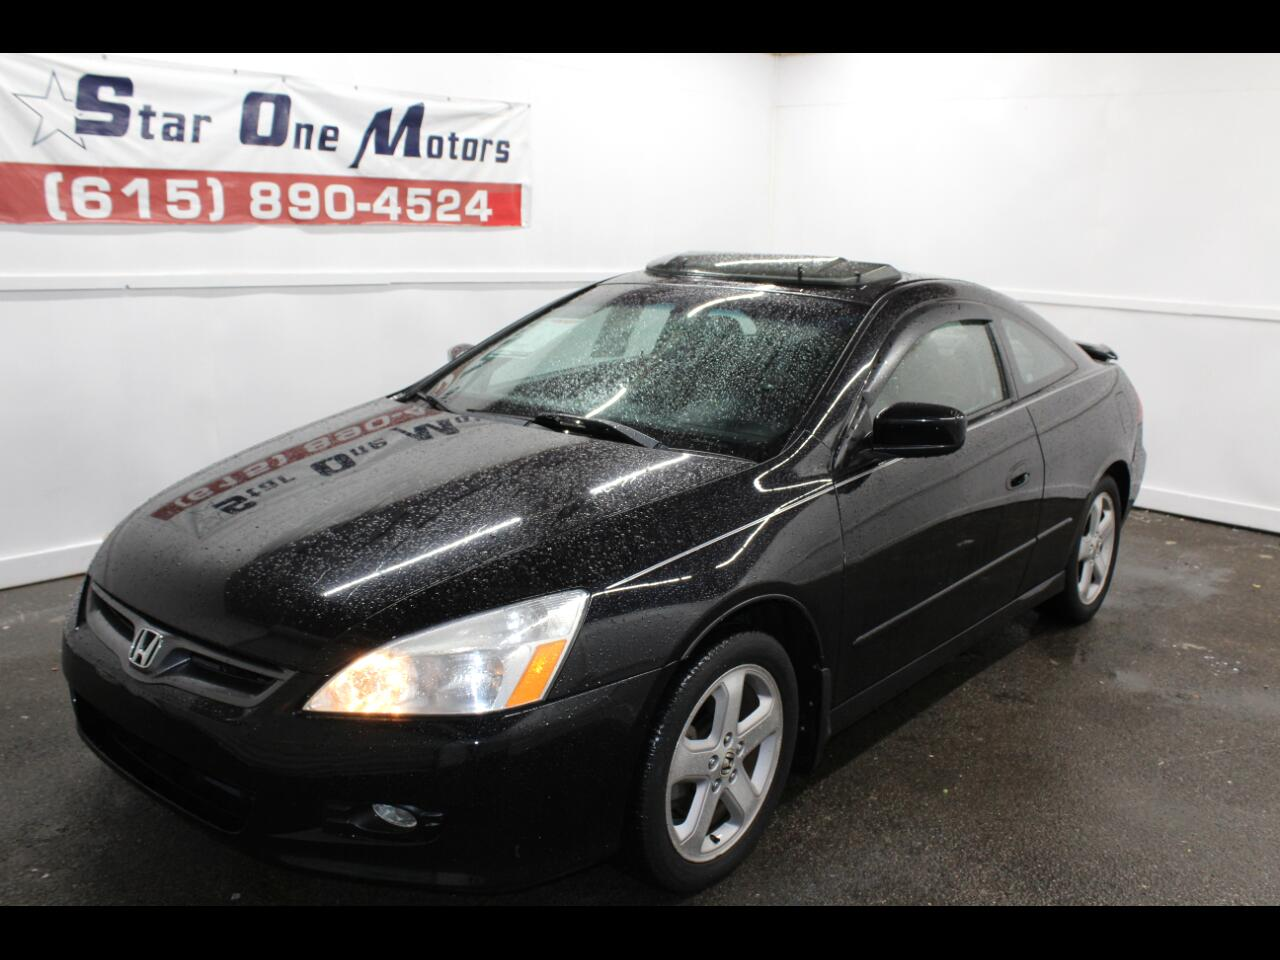 2006 Honda Accord EX V-6 Coupe w/ Nav/ XM Radio